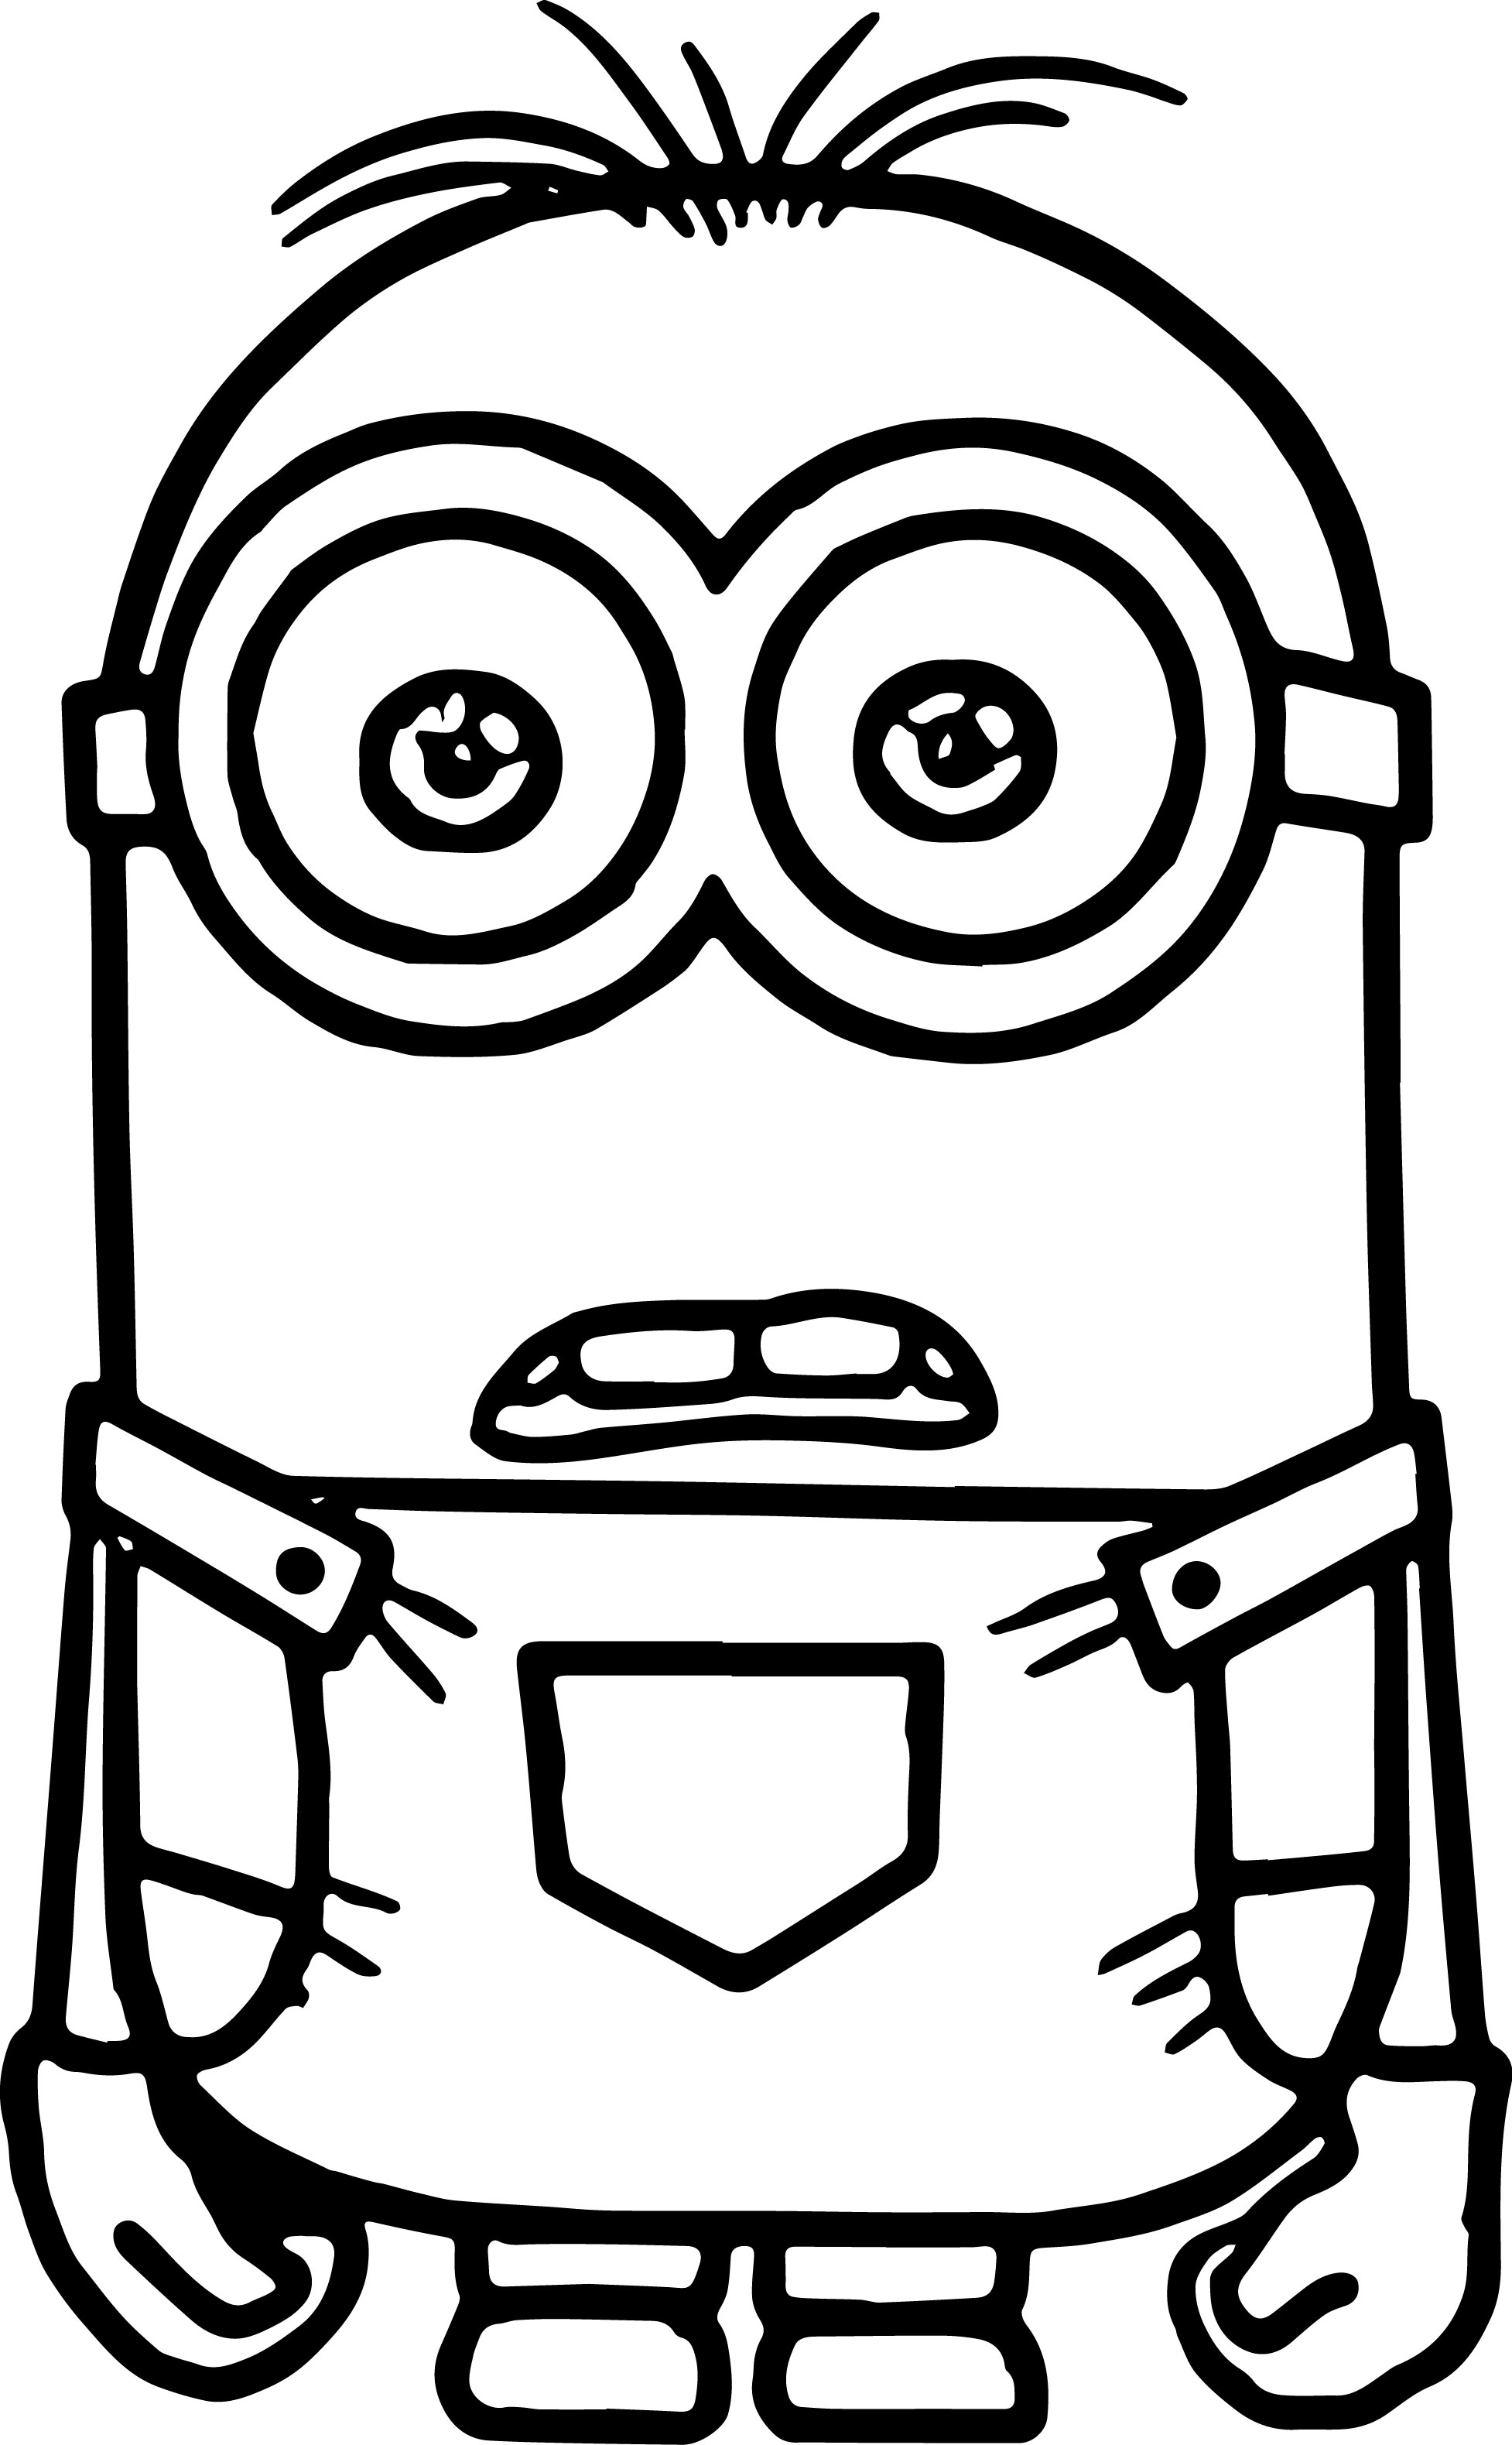 minion coloring book free coloring pages printable pictures to color kids coloring book minion